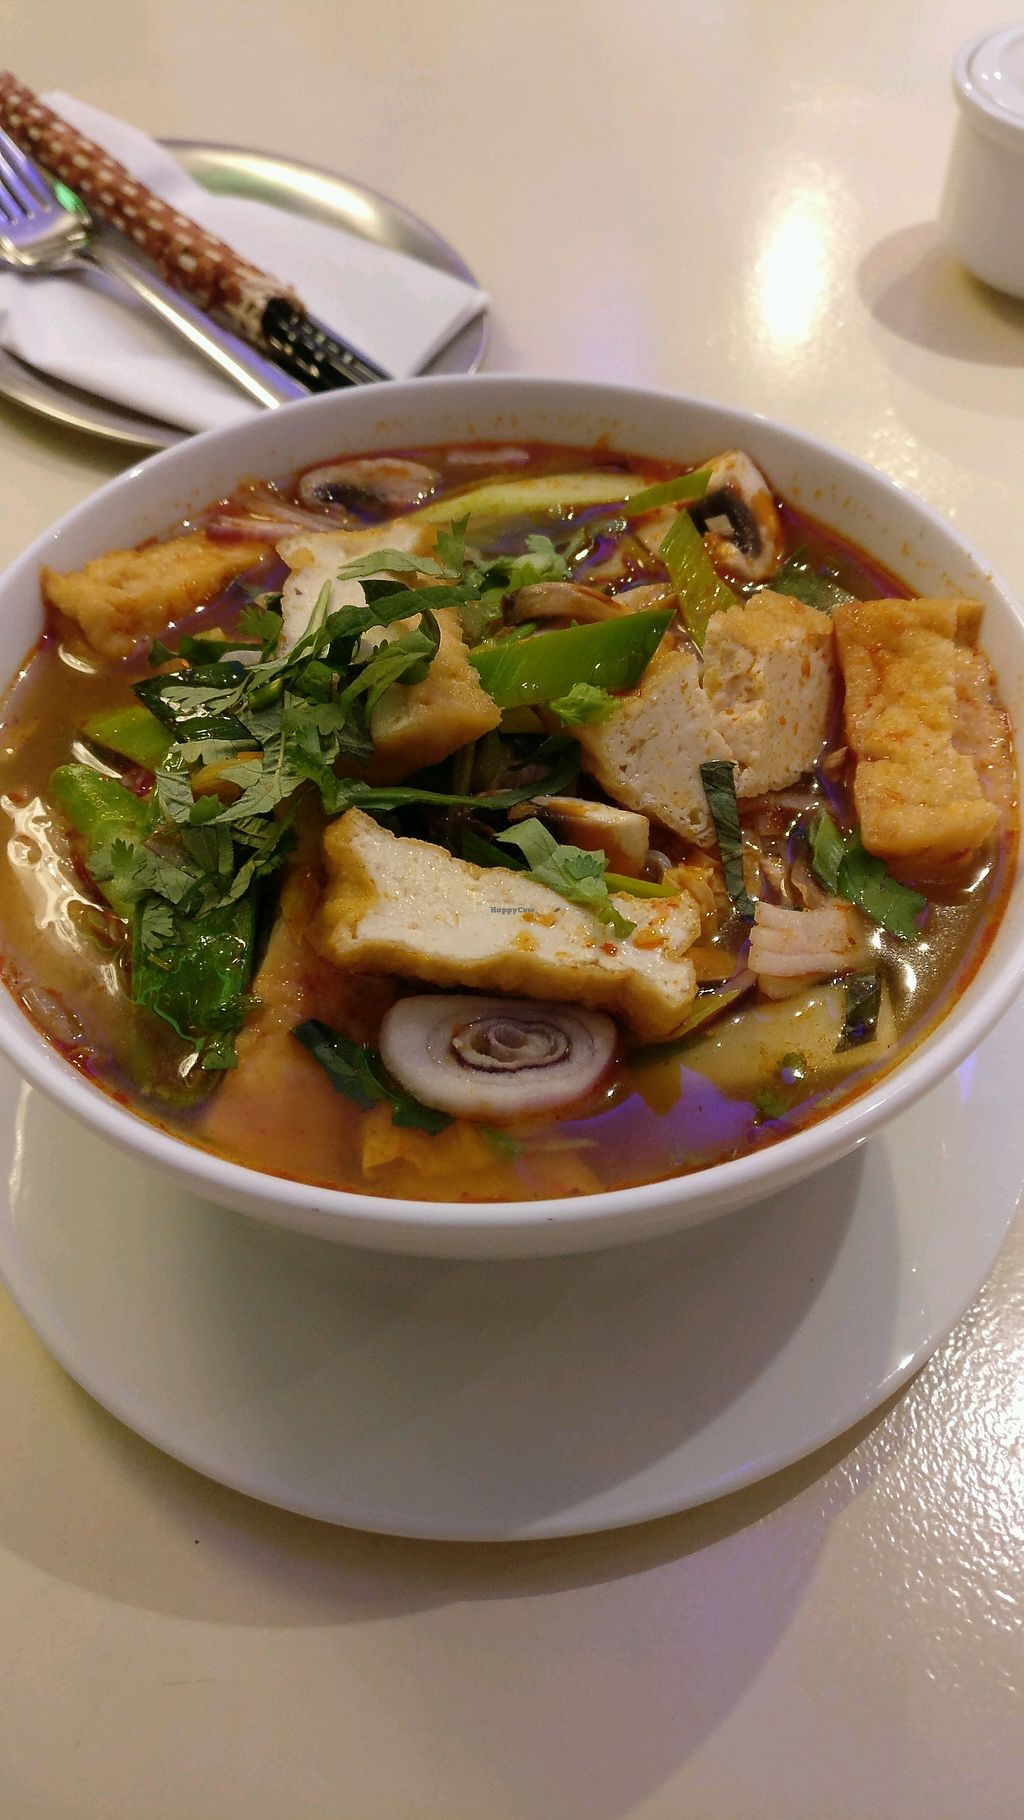 "Photo of AnSa  by <a href=""/members/profile/Pachamamma"">Pachamamma</a> <br/>what you can see is all the veg, 90% solid noodle not Tom yam soup in my book.  <br/> February 9, 2018  - <a href='/contact/abuse/image/78884/356878'>Report</a>"